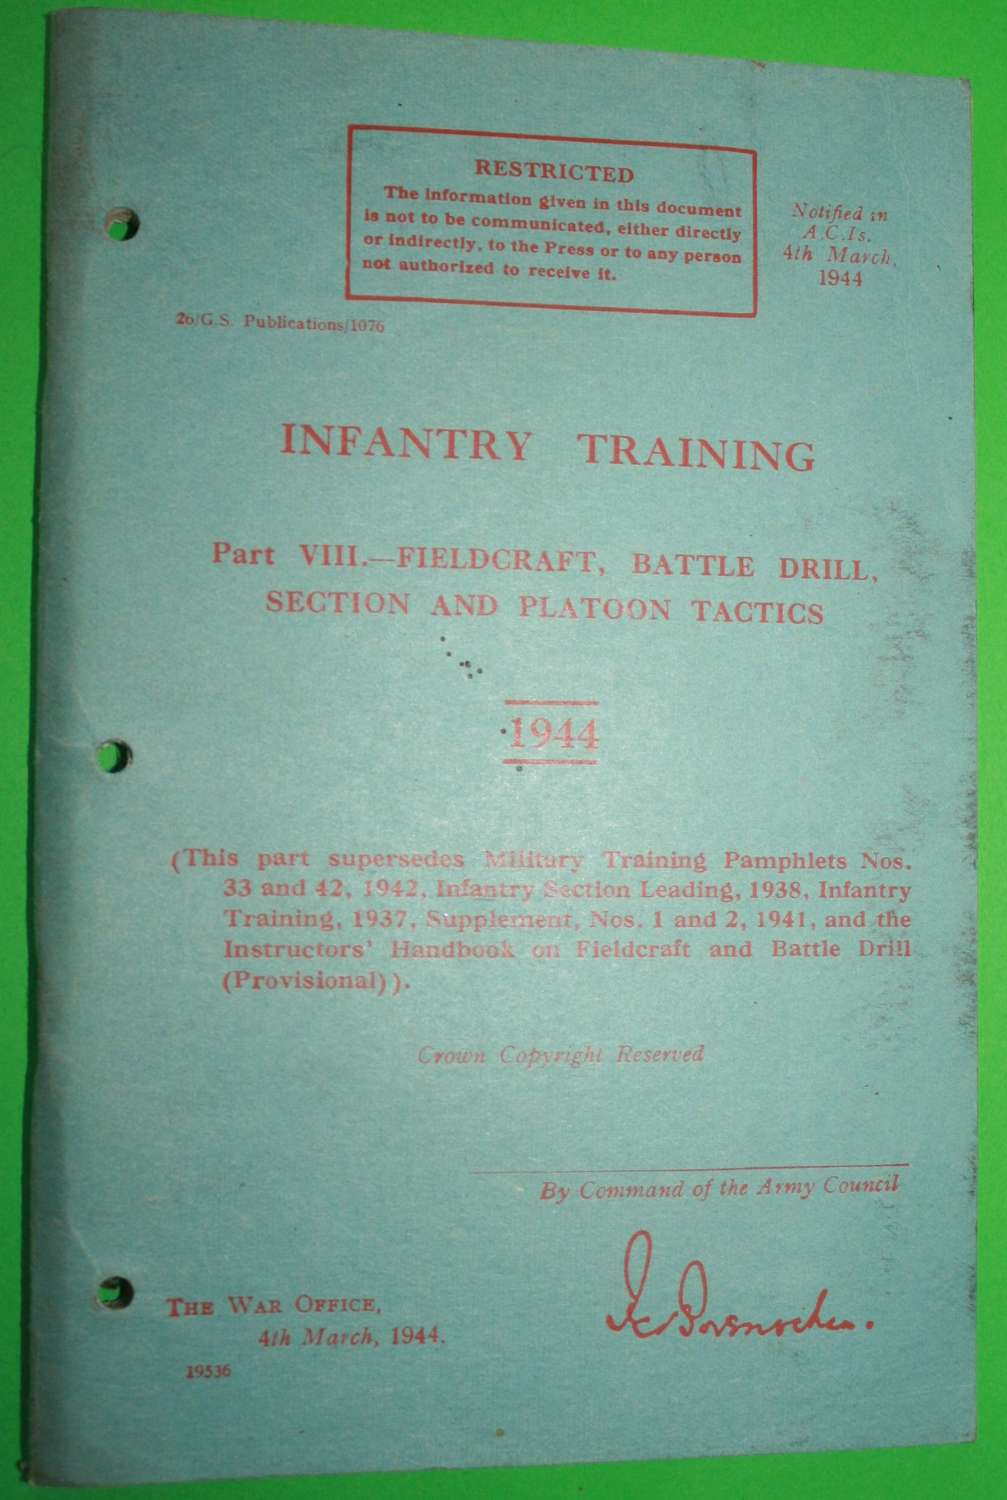 1944 INFANTRY TRAINING PART VIII FIELD CRAFT AND BATTLE DRILL